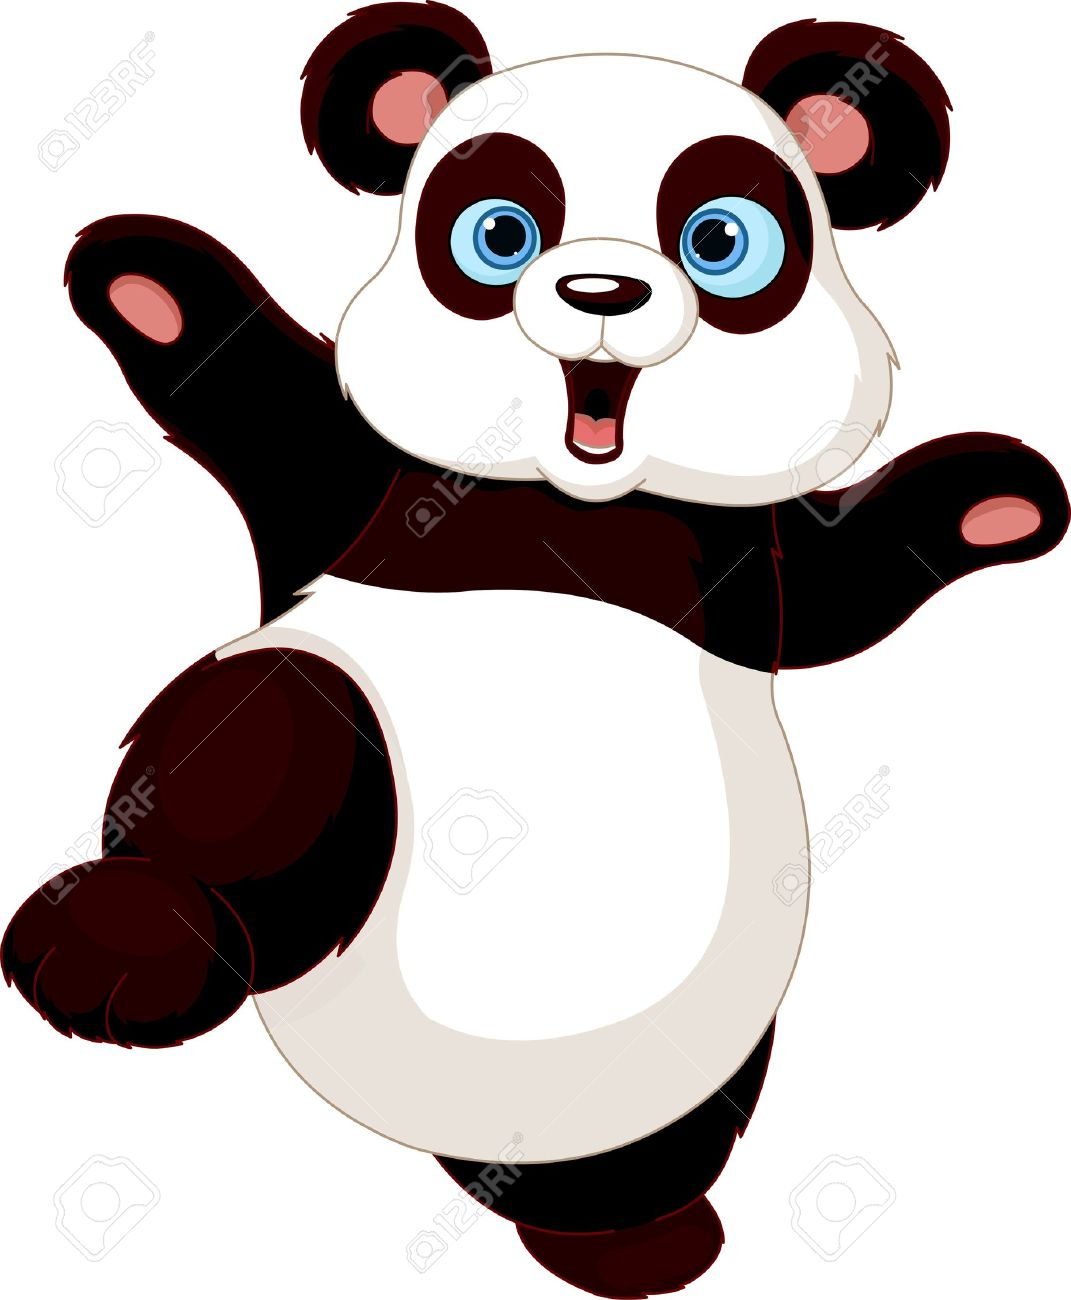 1071x1300 Cute Panda Doing Martial Art Royalty Free Cliparts, Vectors,